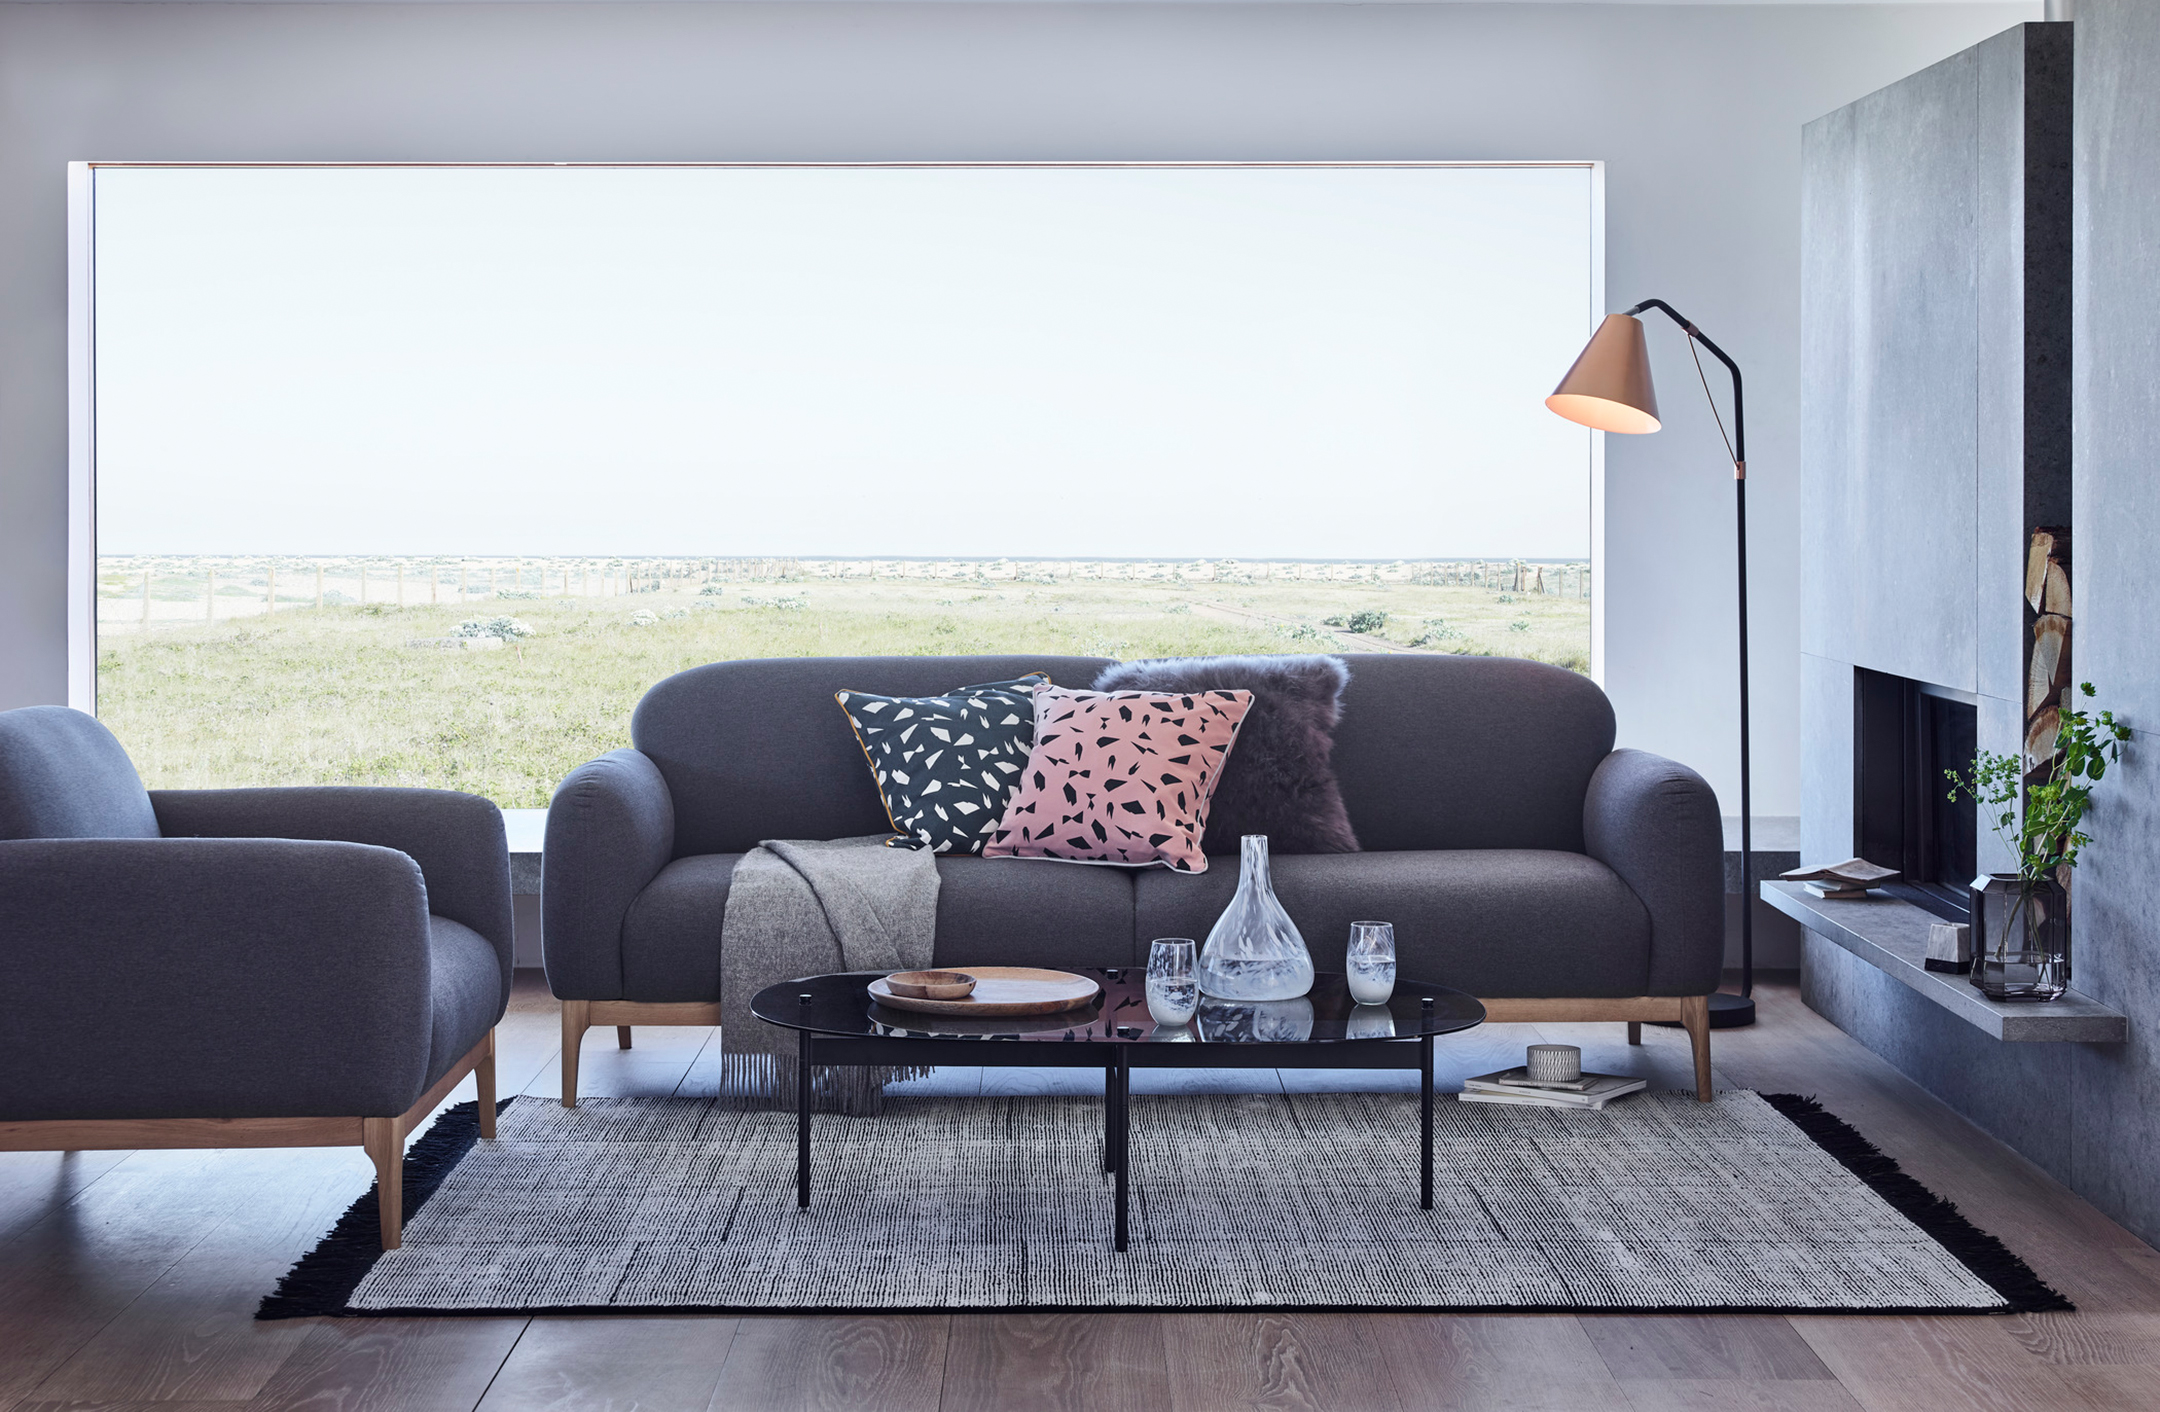 Nordic inspired The new Morten furniture collection from Heals